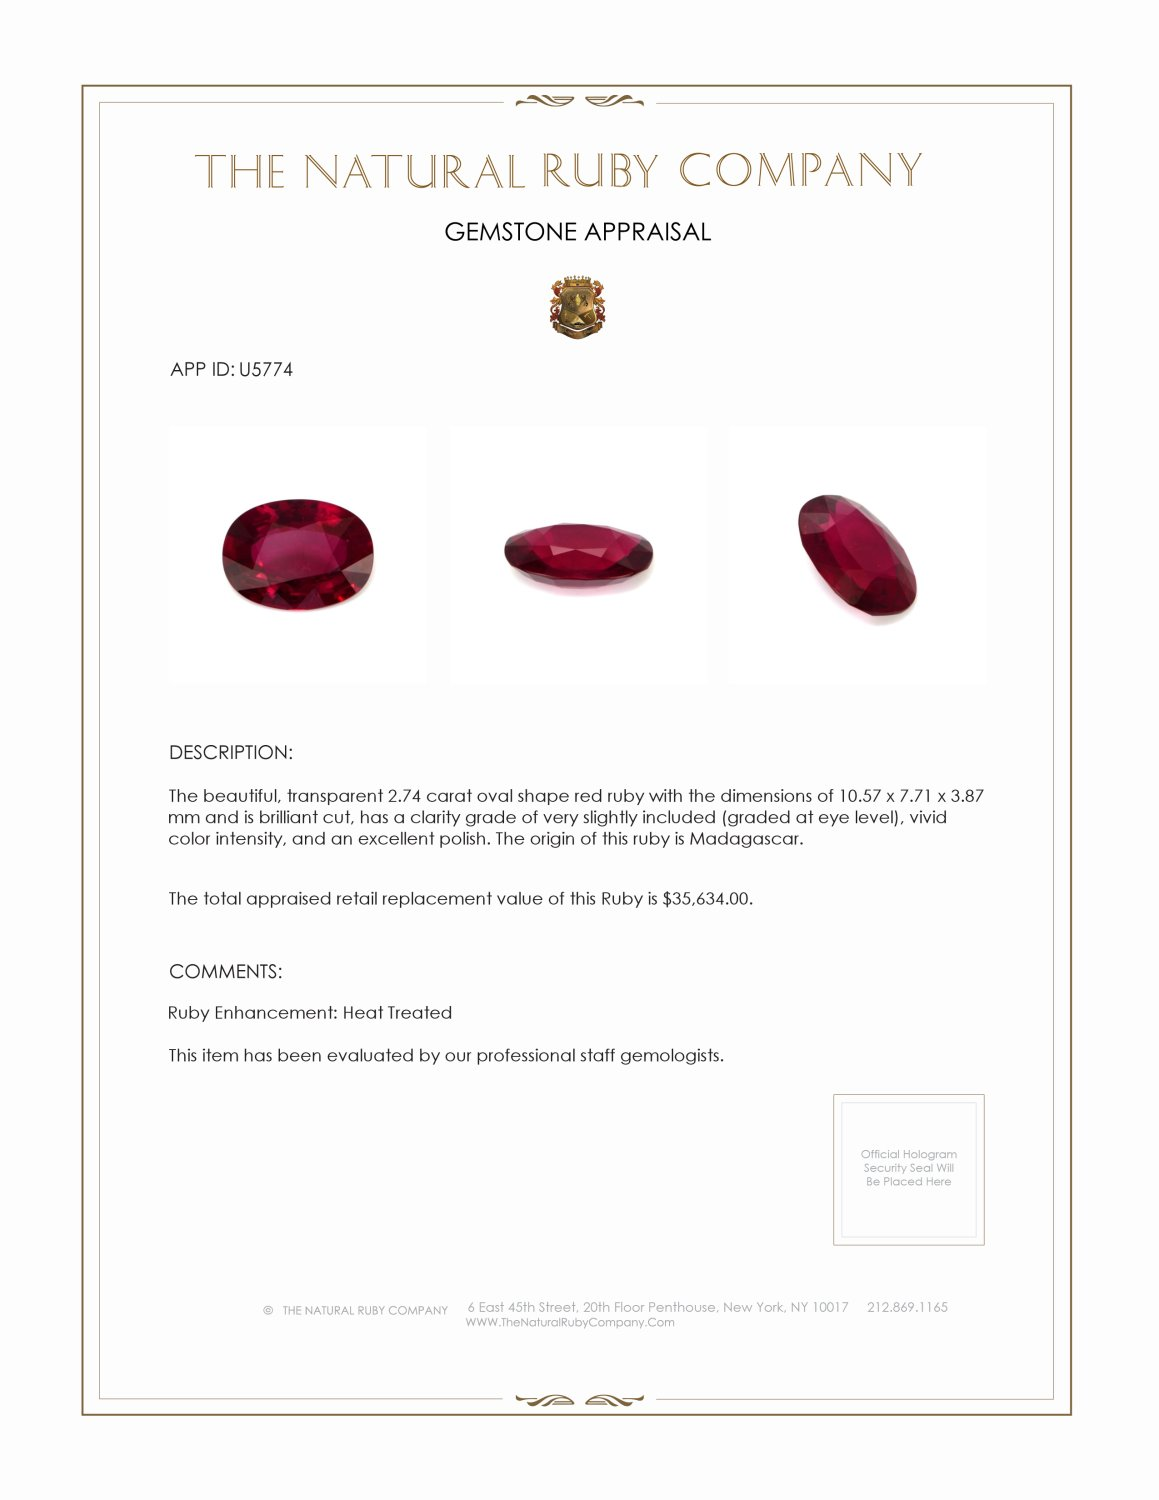 Natural Ruby U5774 Certification 4